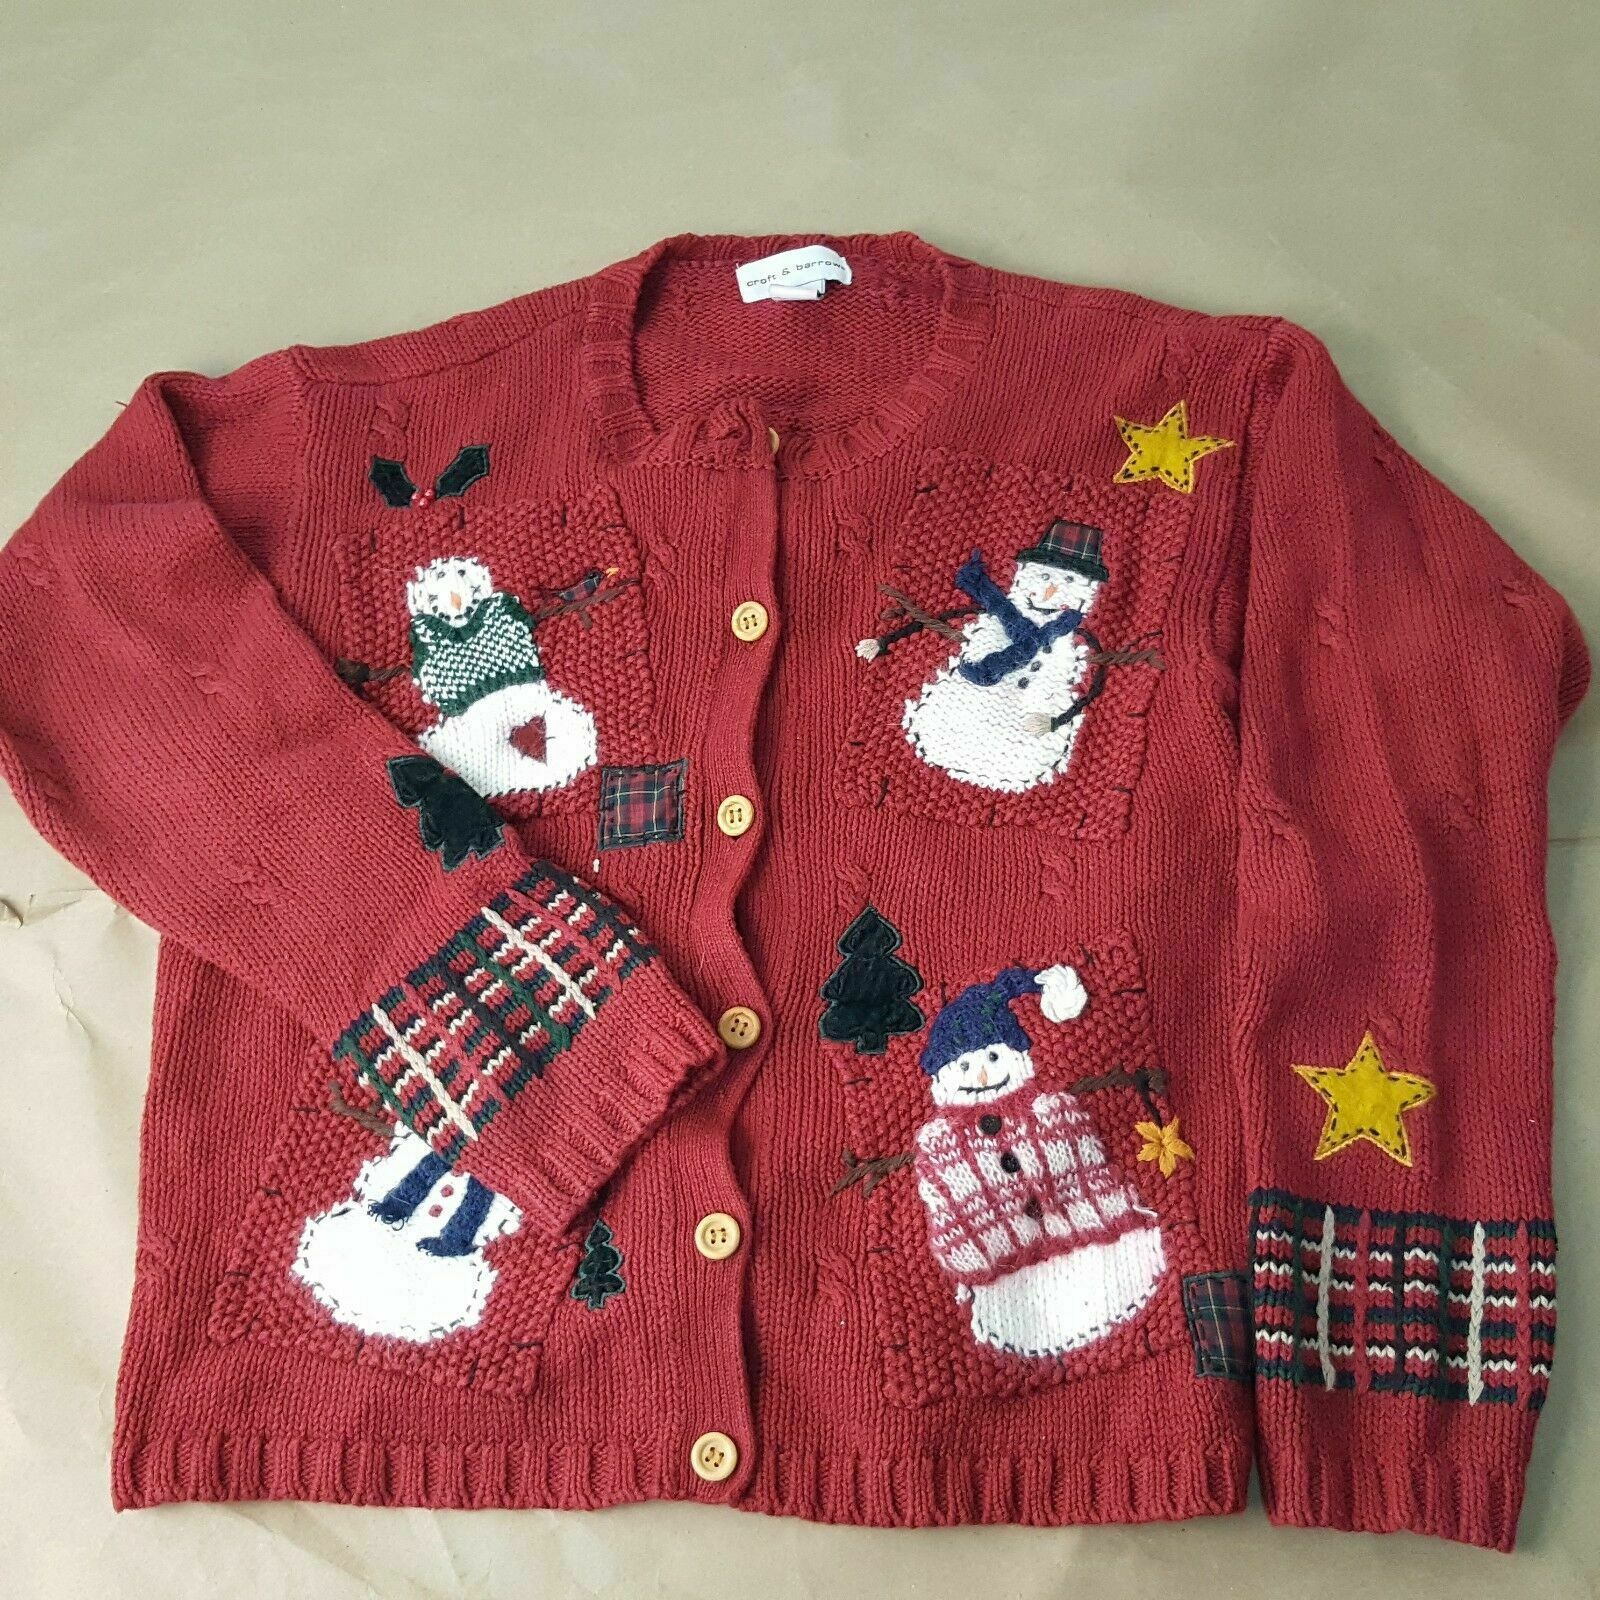 Primary image for Women's Croft & Barrow Size Medium Ugly Christmas Sweater Snowman Wooden Buttons